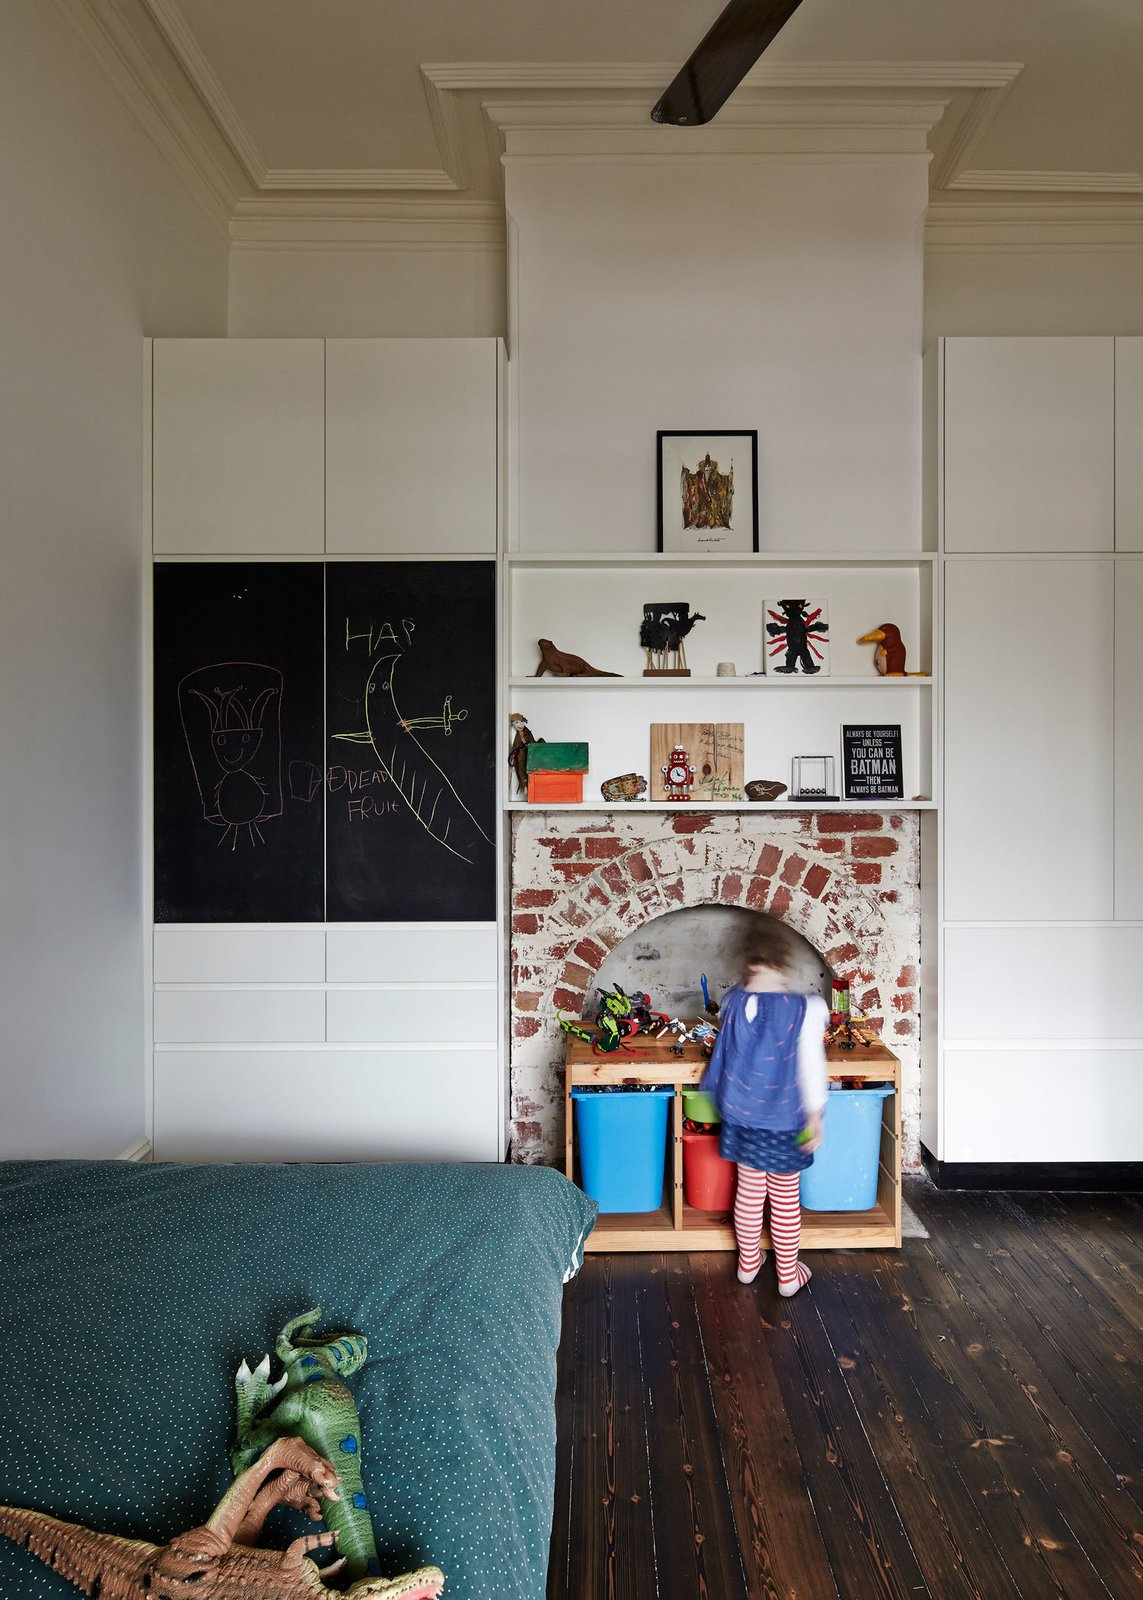 """The house's unique Victorian-era fireplaces had been obscured over the years with mock surrounds. The architects stripped them bare to """"reveal their materiality,"""" as Bright explains."""